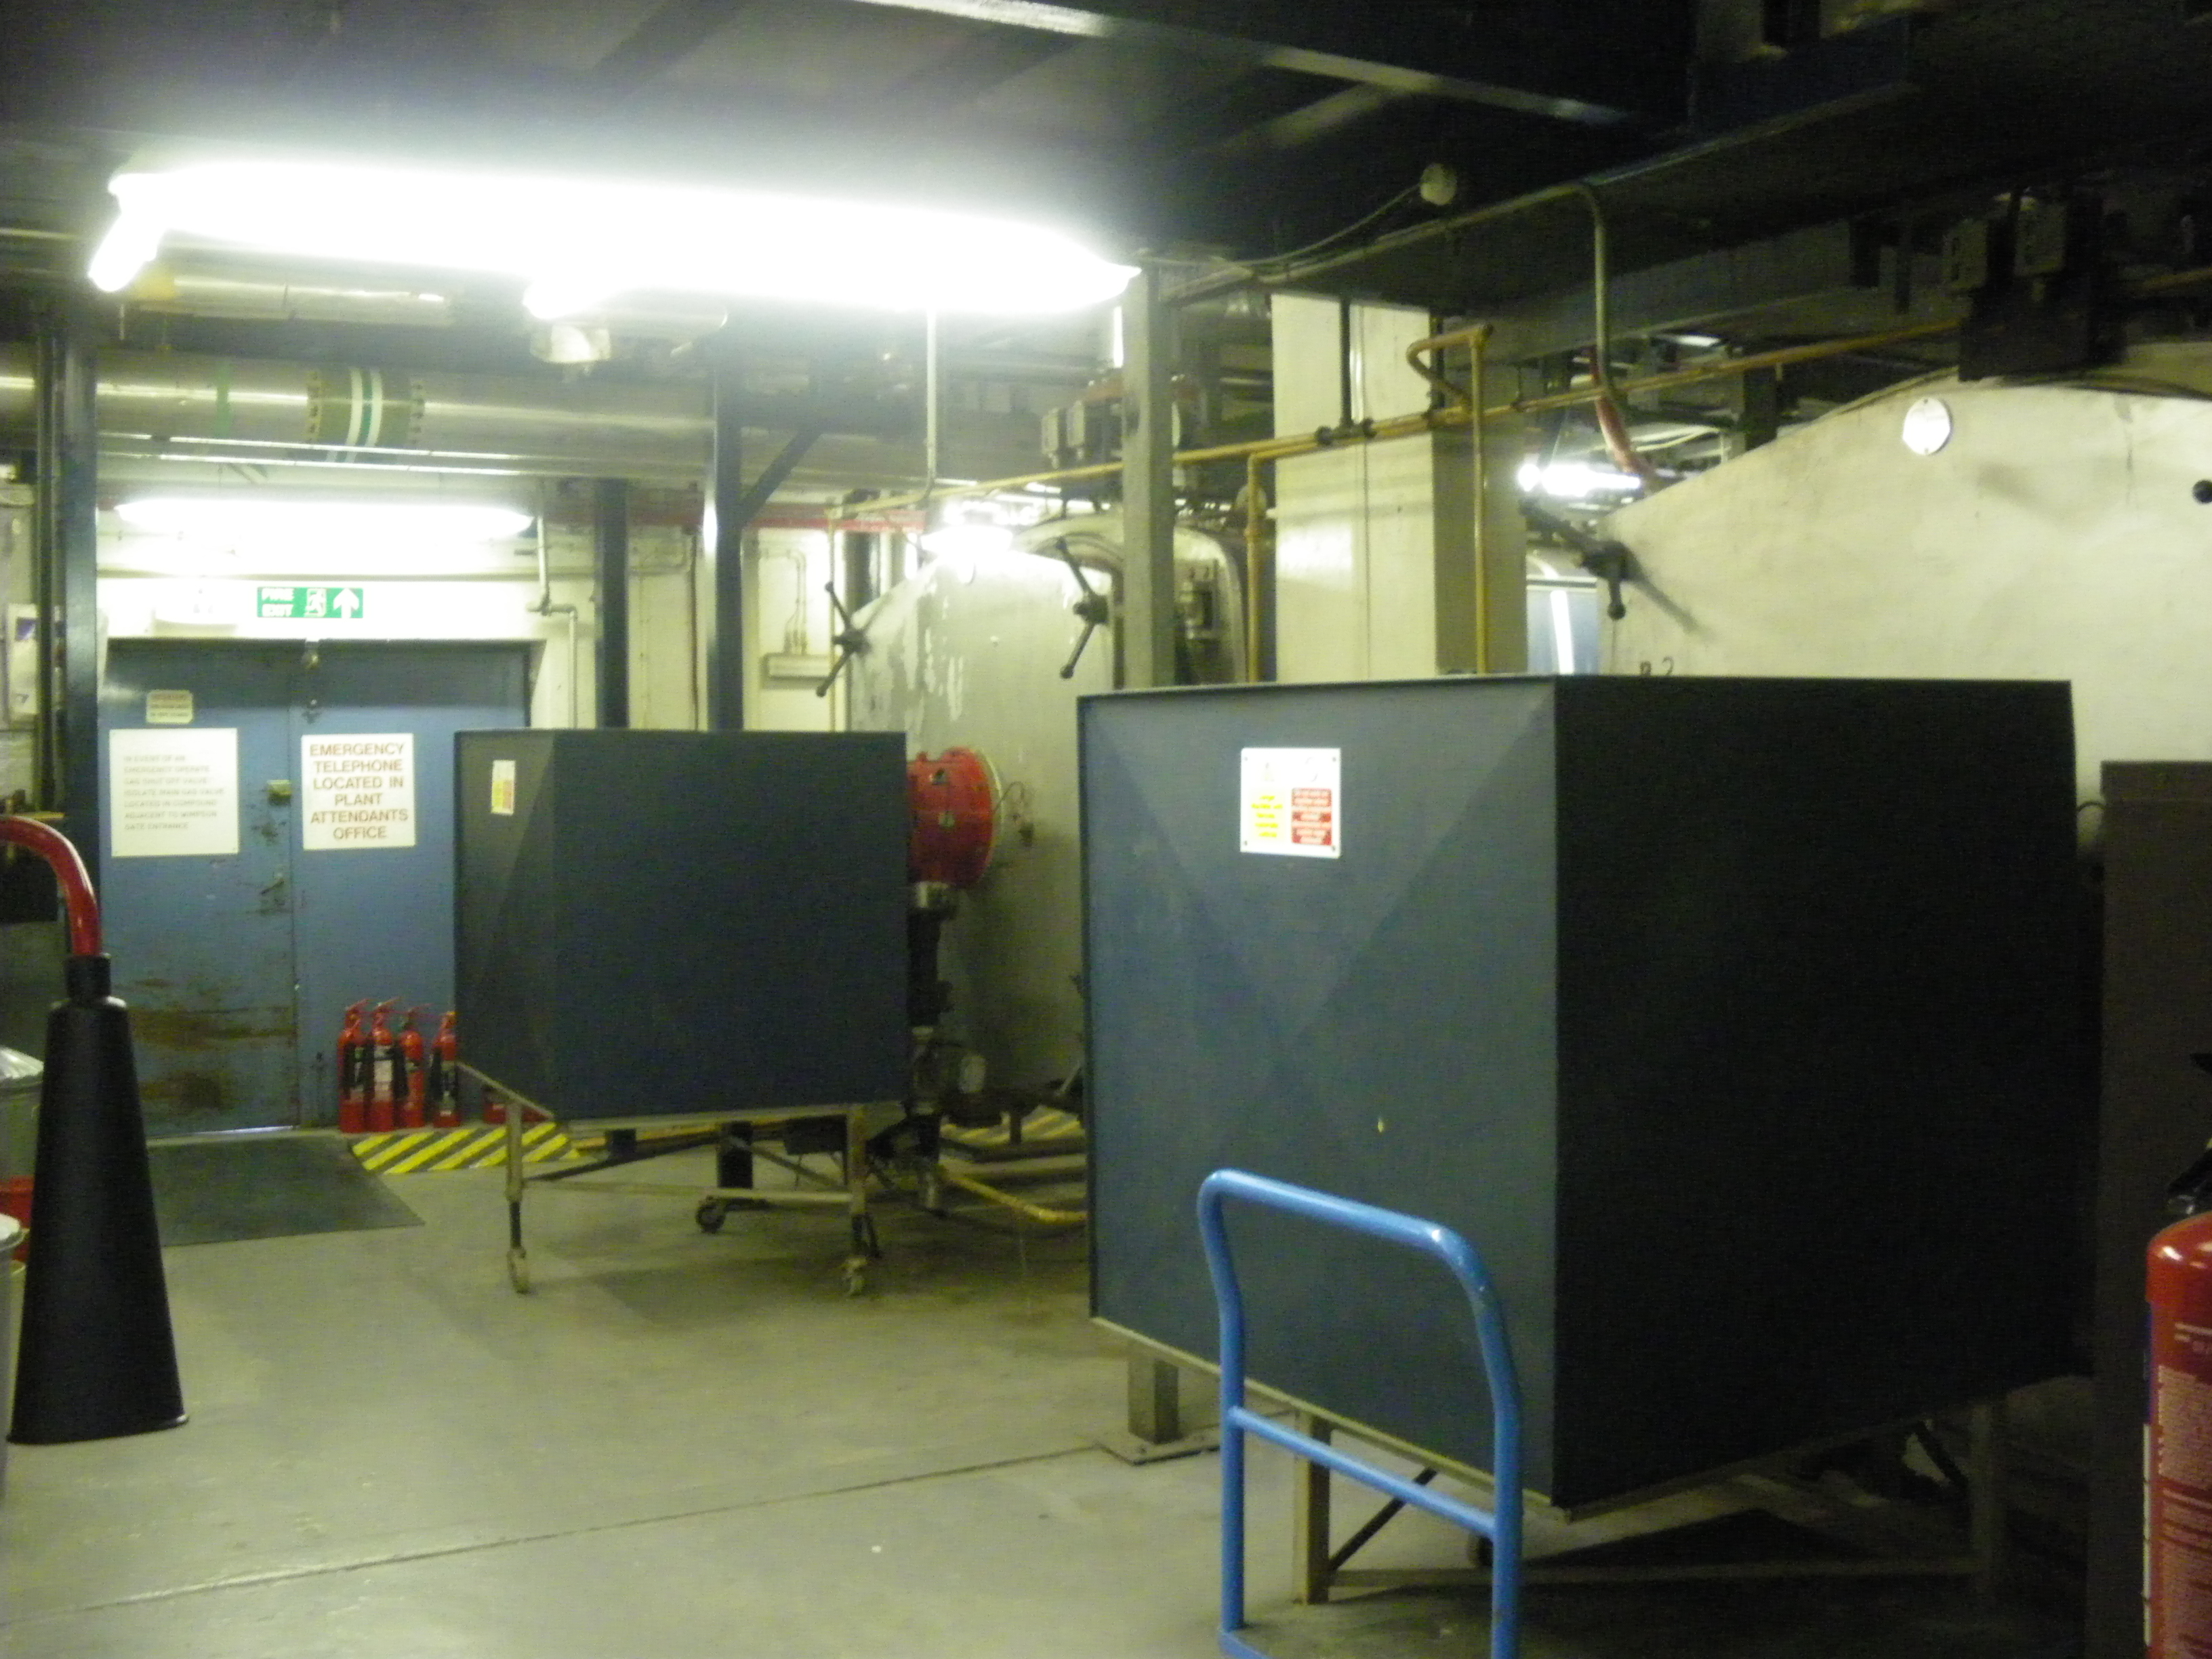 The two boilers and the main door to the Boiler House.